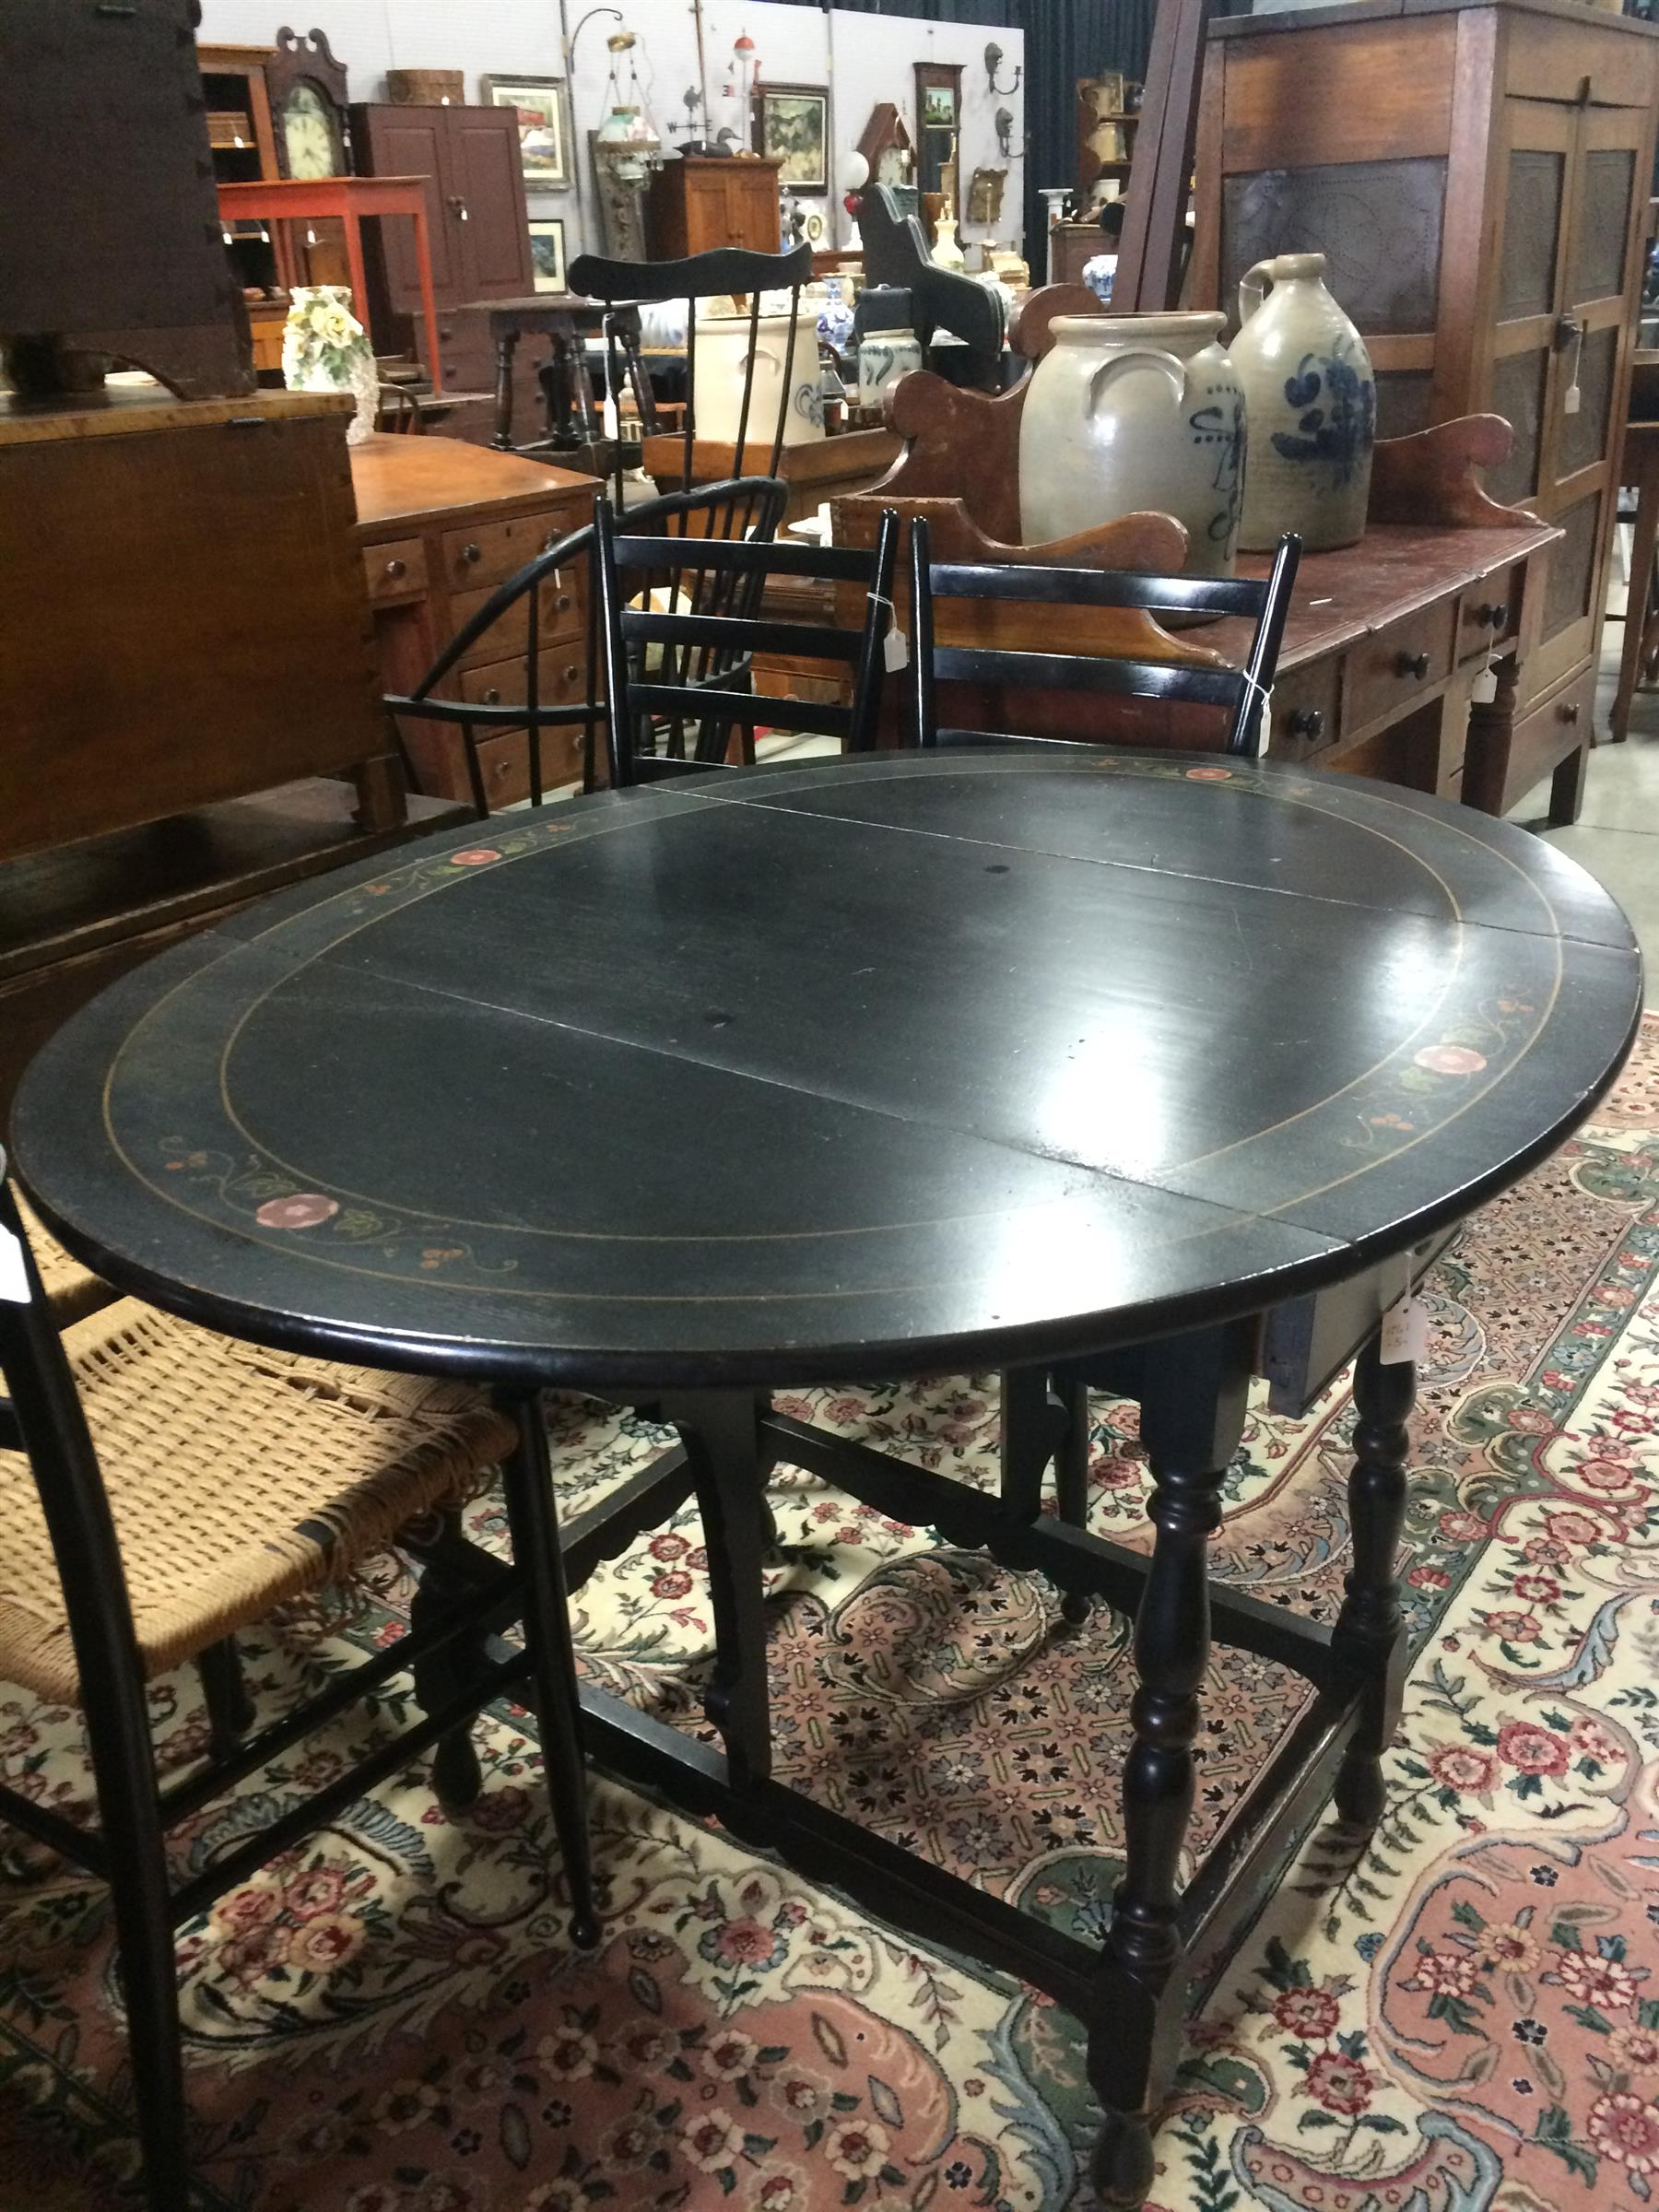 Wilhelm Furniture Company Hand Painted Drop Leaf Table With Single Drawer Sturgis Michigan 20th Century Black Paint Fl Accents Dovetailed